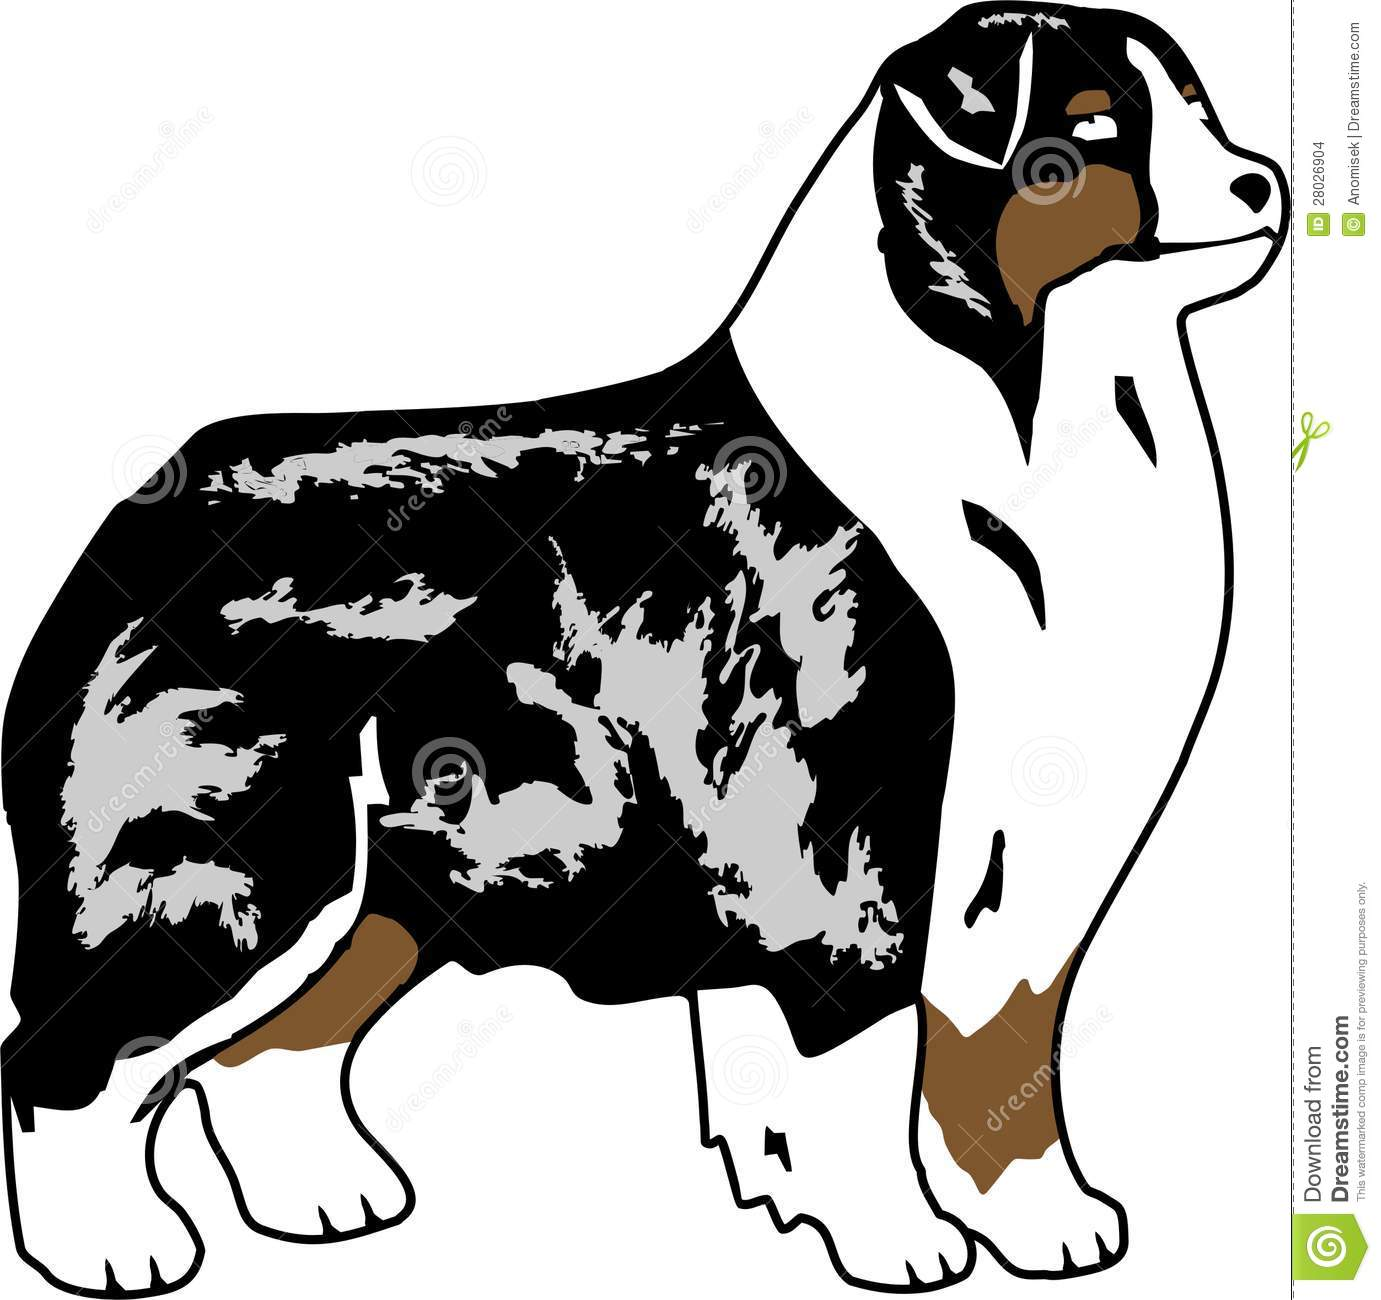 Australian Shepherd clipart #9, Download drawings